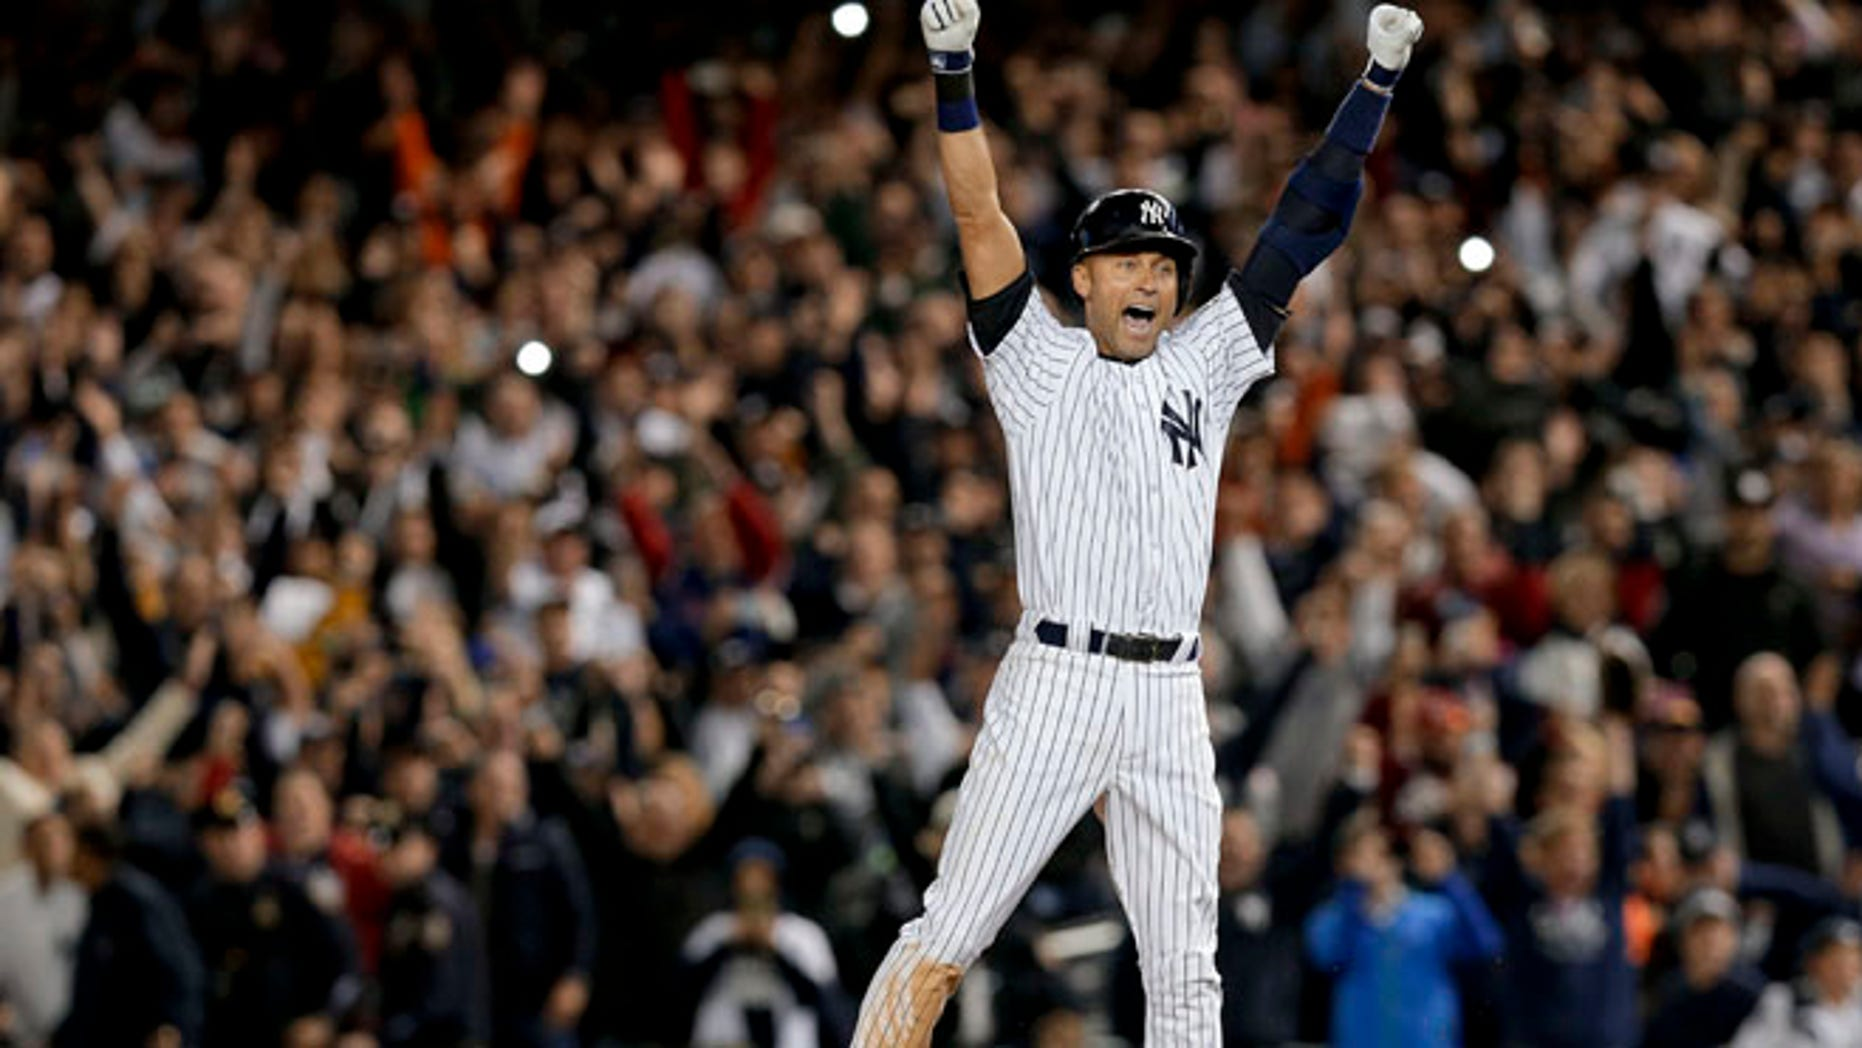 Sept. 25, 2014: New York Yankees' Derek Jeter jumps after hitting the game-winning single against the Baltimore Orioles in the ninth inning of a baseball game in New York. (AP)